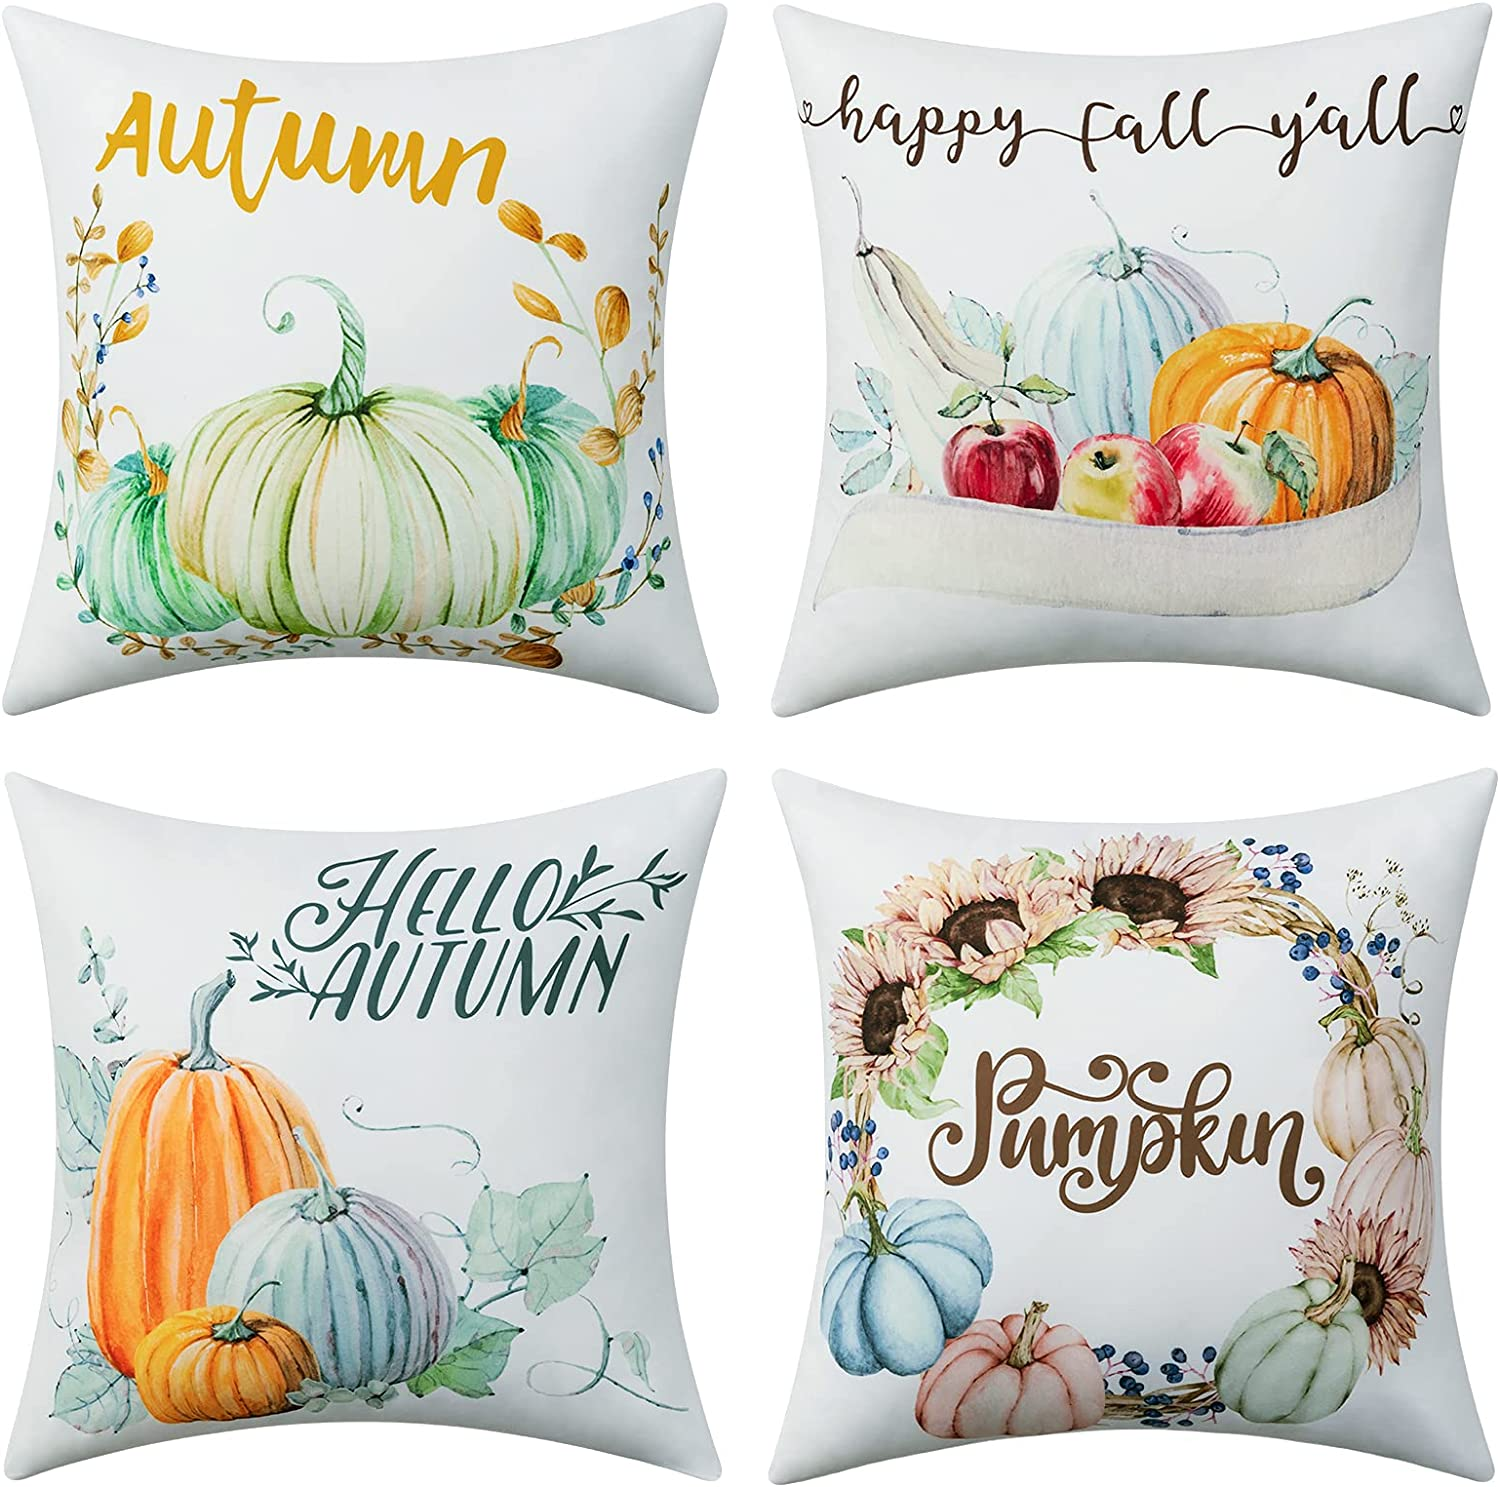 Dreamcountry Fall Pillow Covers 18x18 Inches Set of 4 Fall Decor Throw Pillow Covers Cotton Linen Pumpkins Decorative Pillow Covers for Thanksgiving Autumn Farmhouse Outdoor and Room Decorative